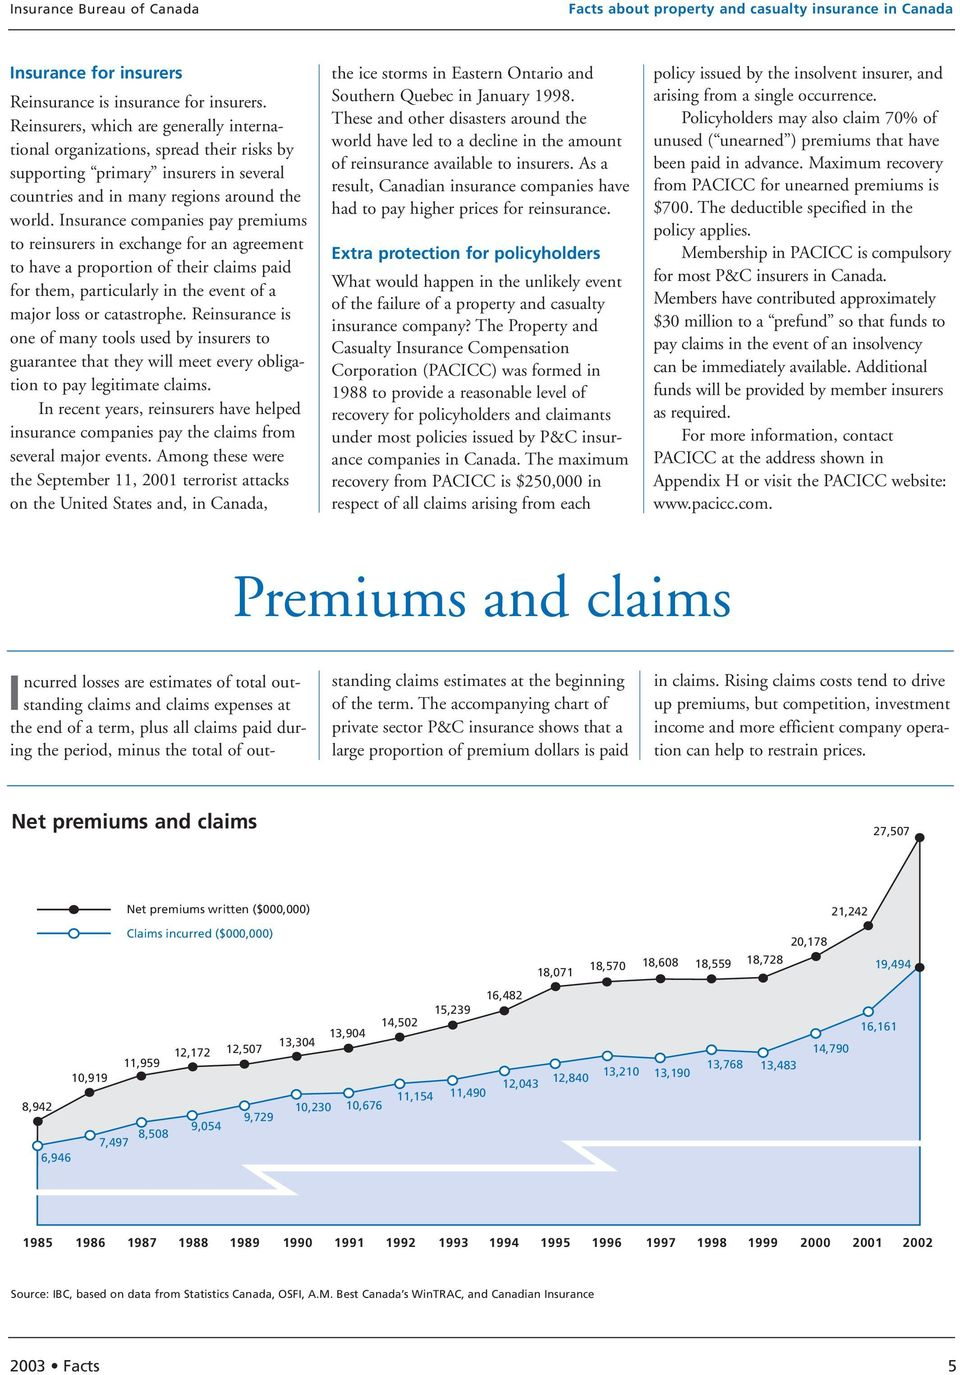 Insurance companies pay premiums to reinsurers in exchange for an agreement to have a proportion of their claims paid for them, particularly in the event of a major loss or catastrophe.